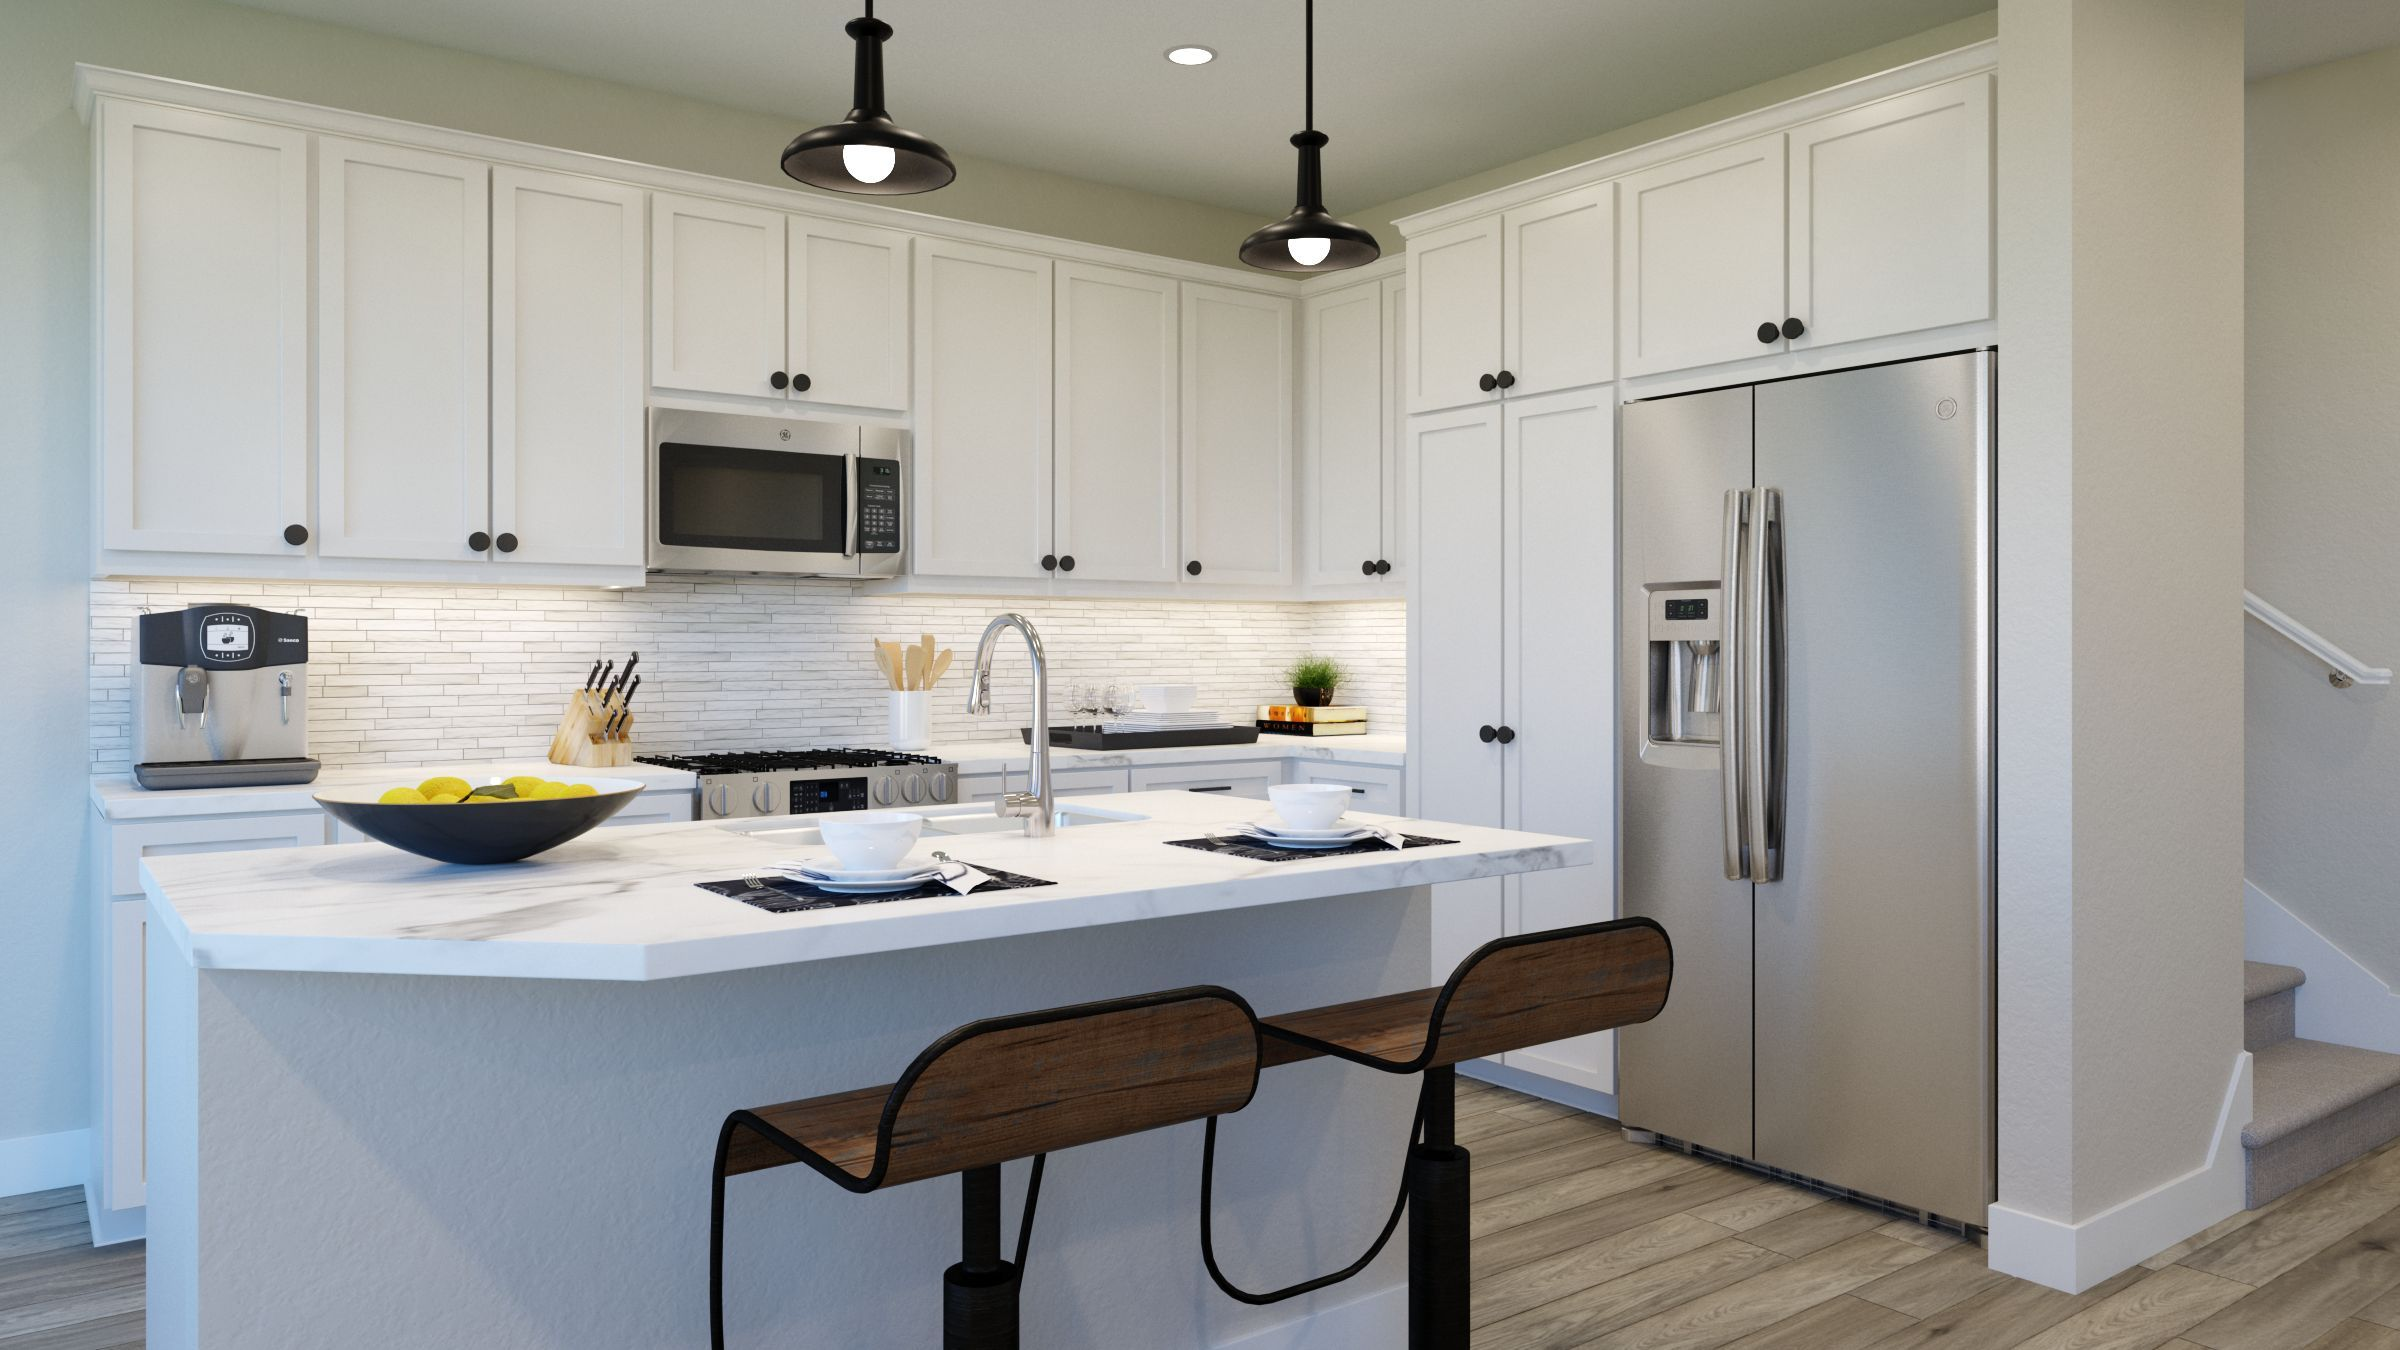 Kitchen featured in the Residence 4 By Taylor Morrison in Oakland-Alameda, CA